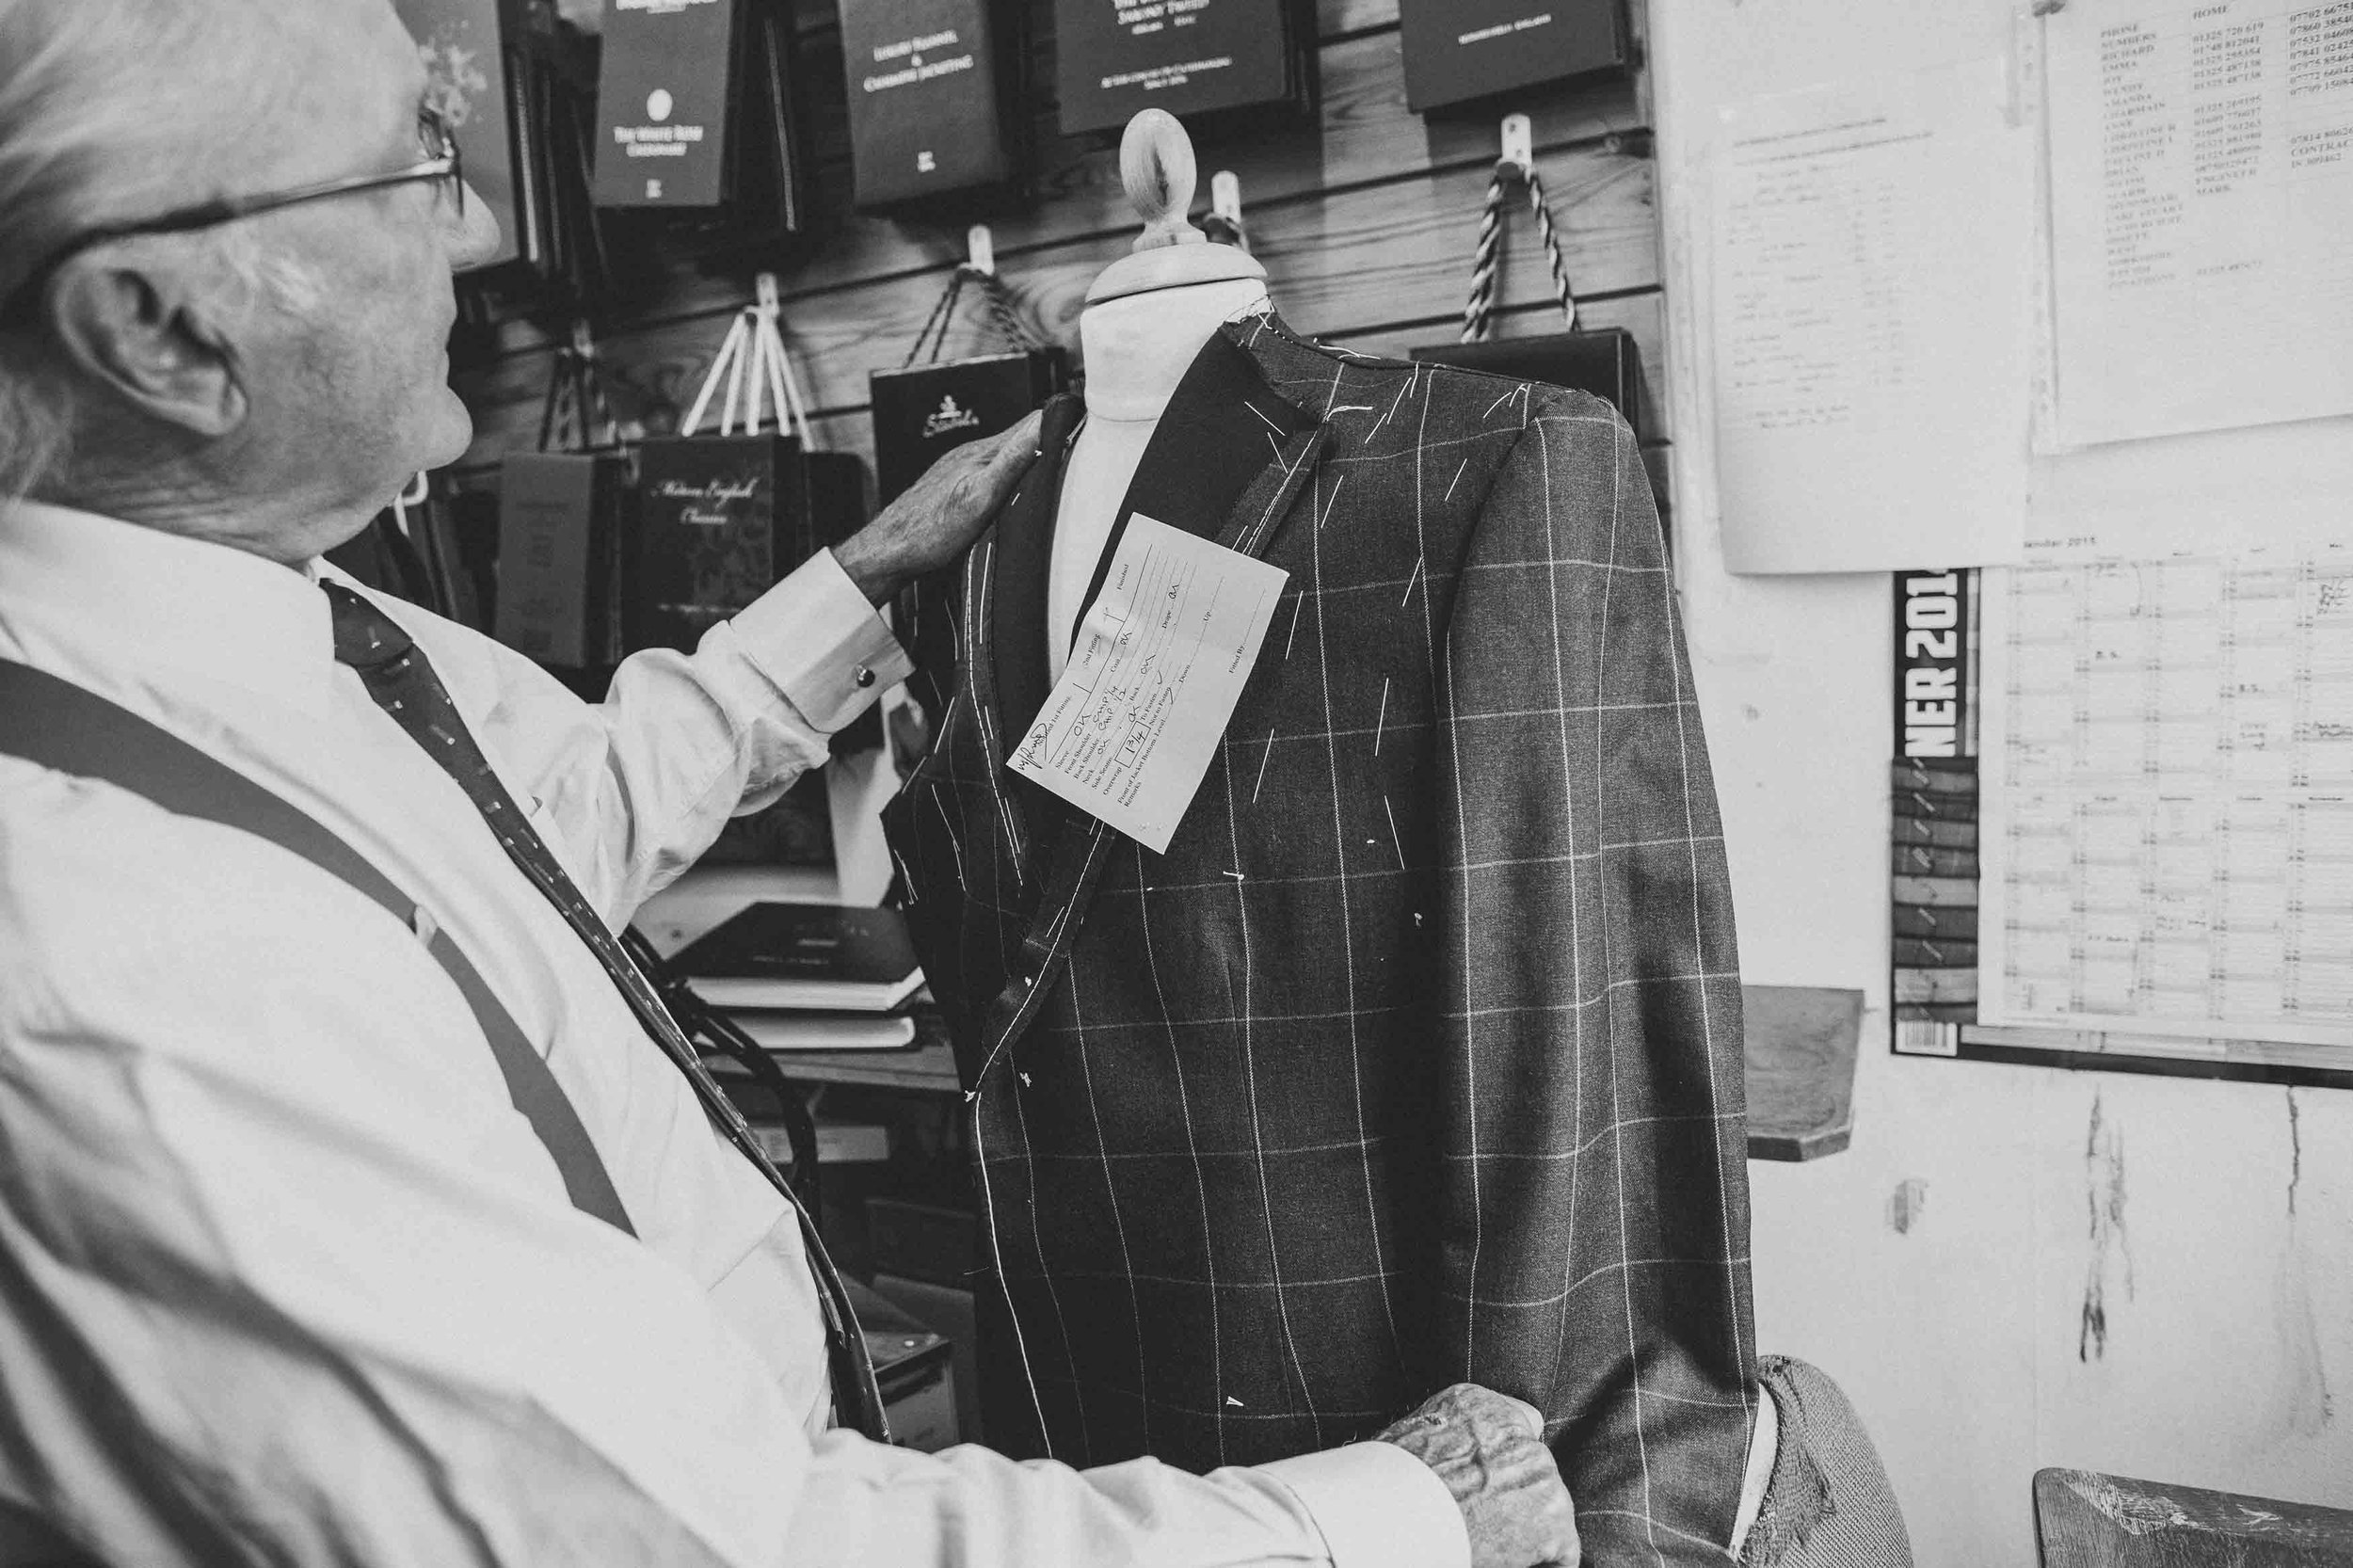 4. FITTING AND COLLECTION - Once your suit has been fitted on your second visit it is tailored and hand finished, at this stage your suit will be fitted again and minor adjustments can be made, once you've had your final fitting you suit is ready to take away.  The whole process takes about 9 weeks.